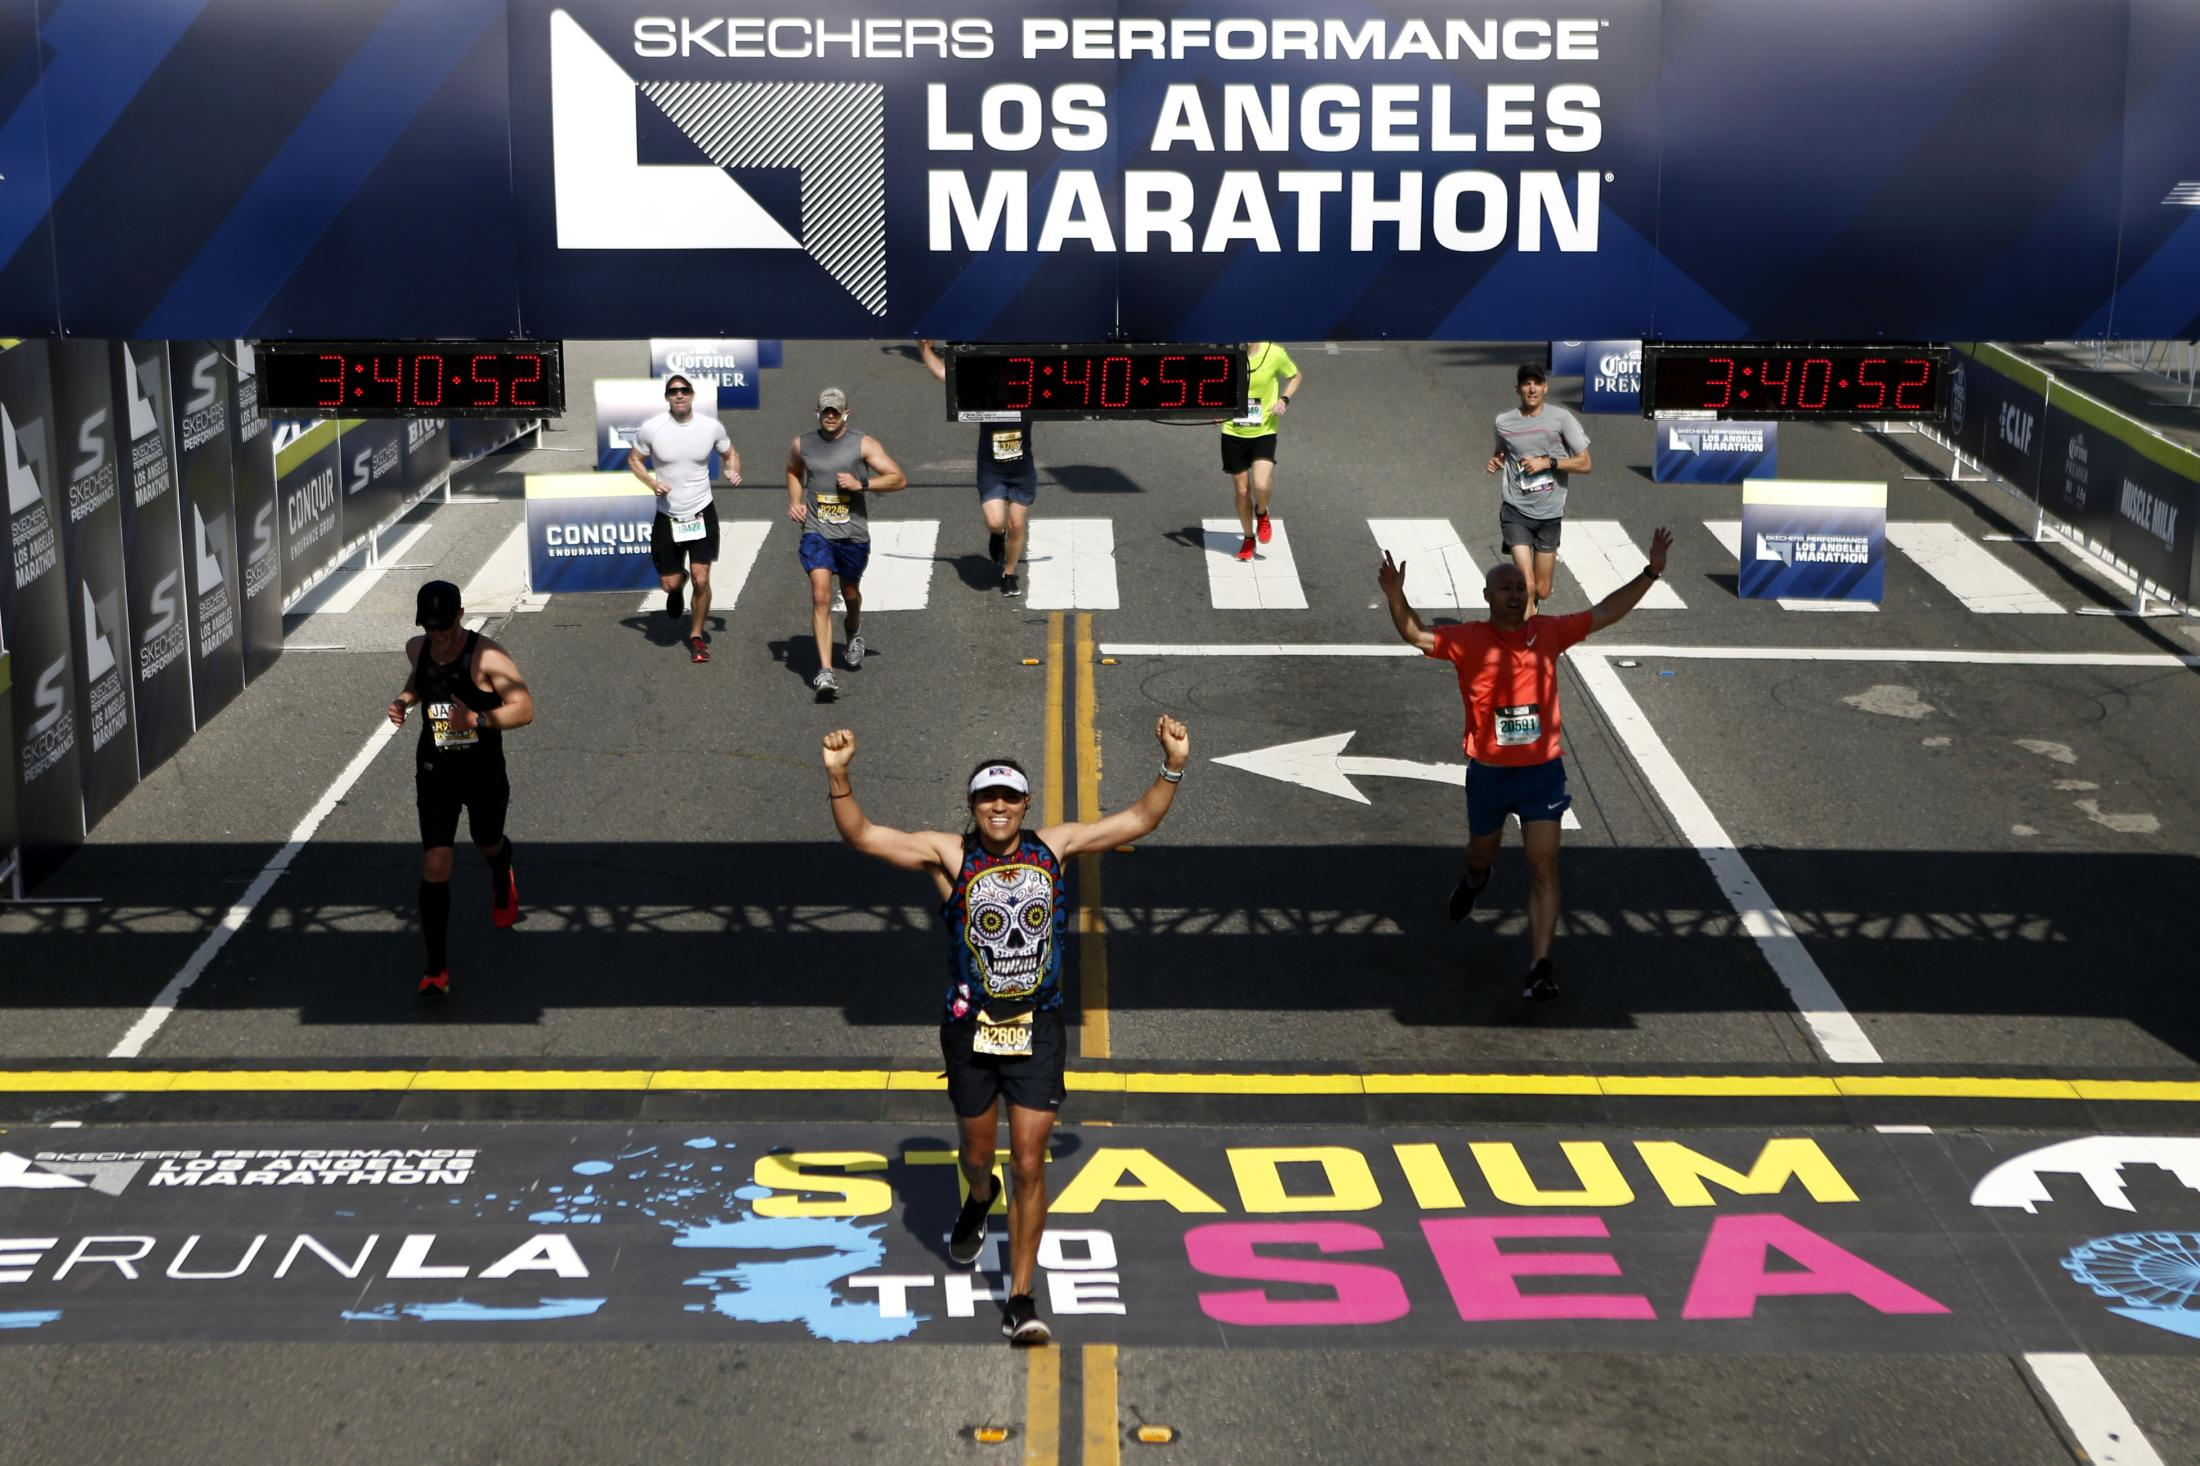 LOS ANGELES, CALIFORNIA - MARCH 24:  Jesus M. Rodriguez smiles as he crosses the finish line of the 2019 Skechers Performance Los Angeles Marathon on March 24, 2019 in Los Angeles, California. (Photo by Katharine Lotze/Getty Images)